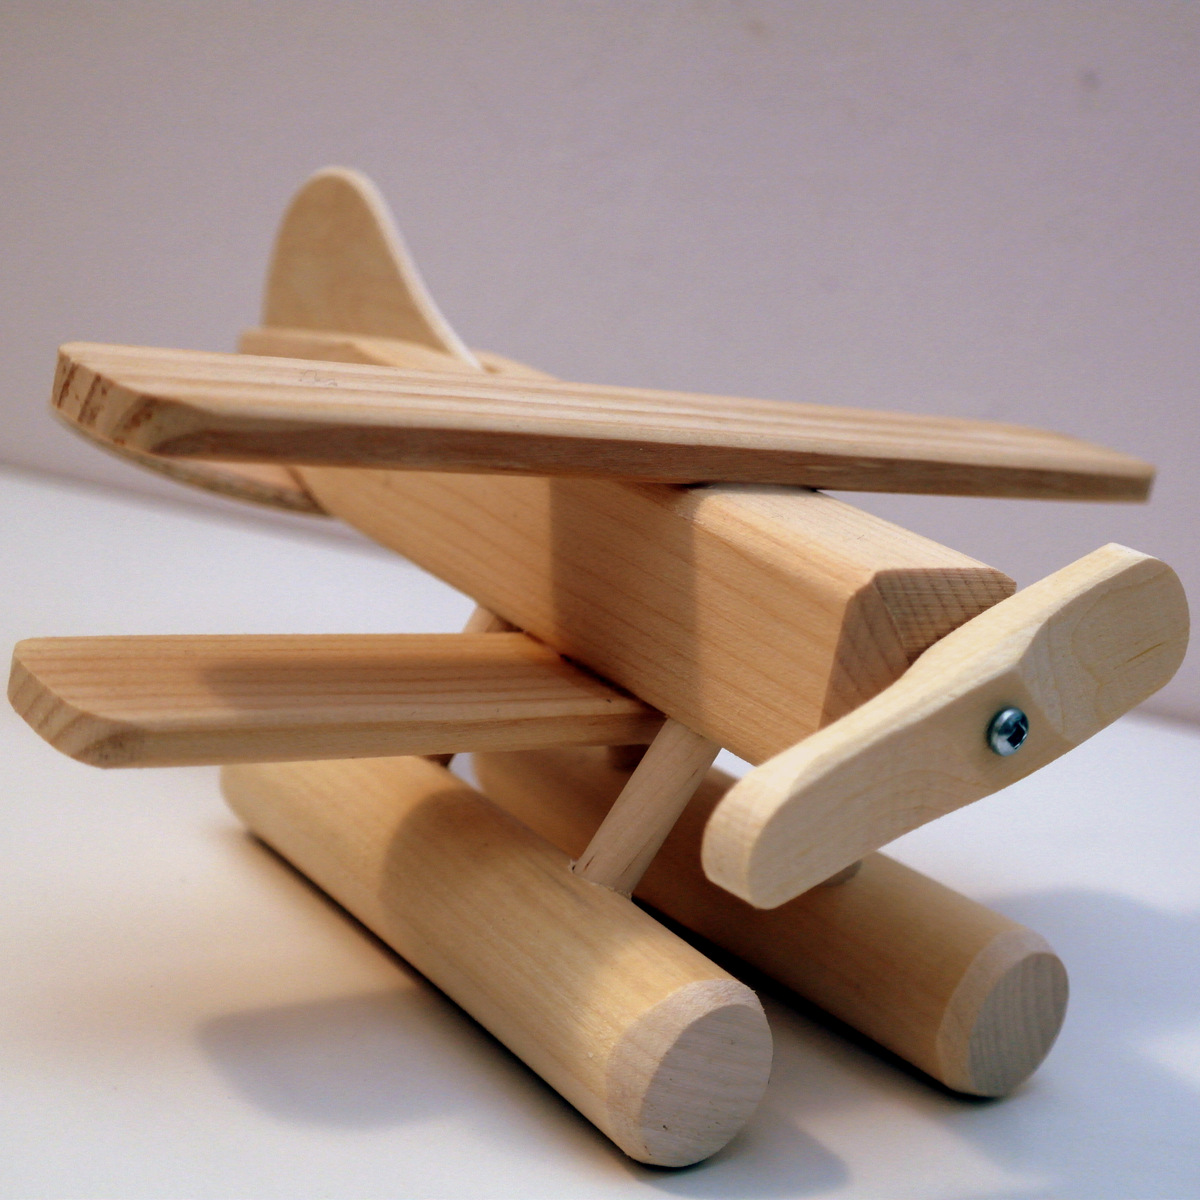 Wooden Toys Product : Natural baby and kids toys wooden sea plane toy